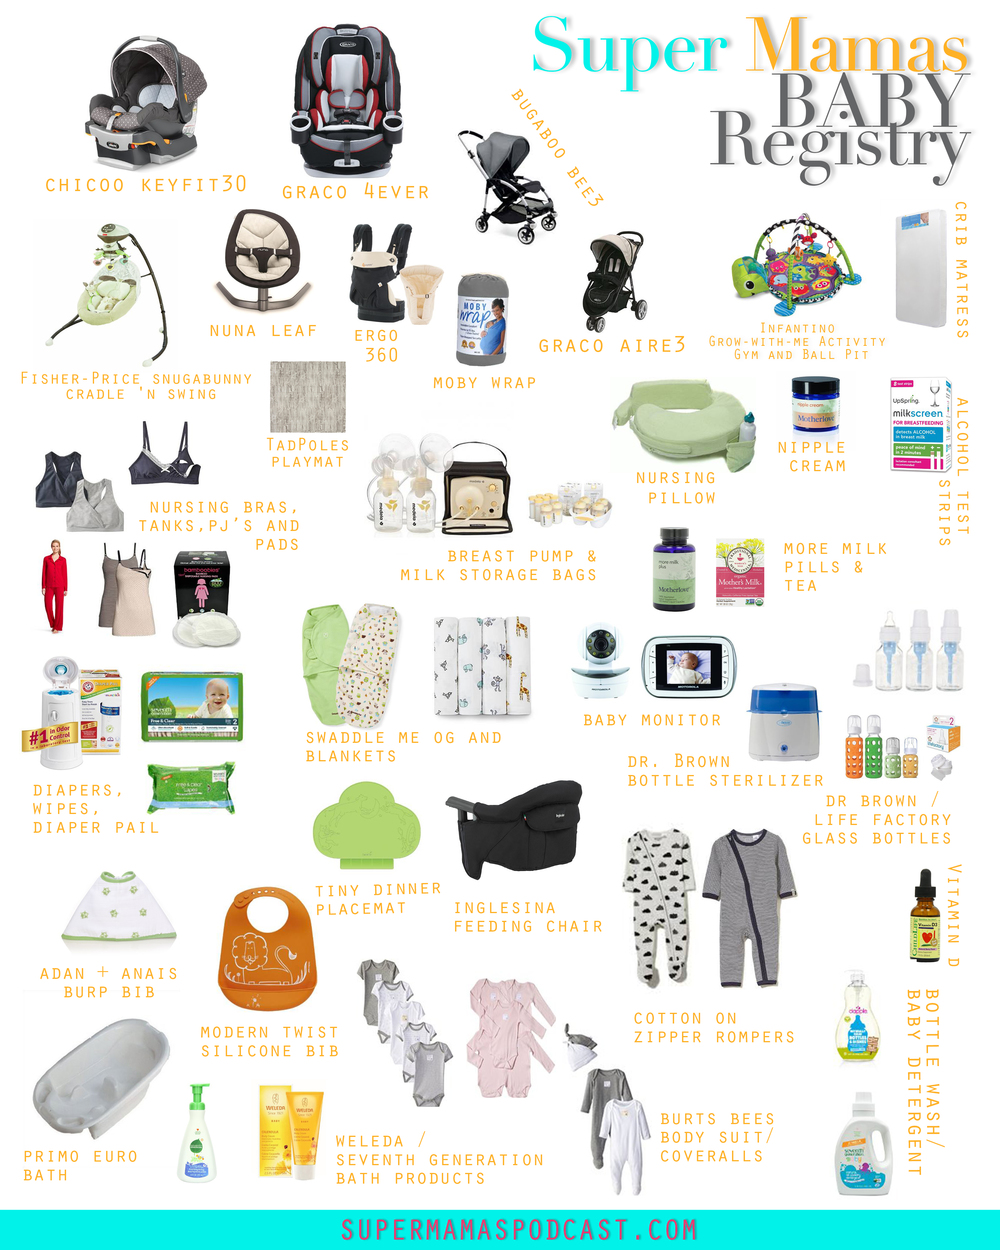 Episode 27 The Ultimate Super Mamas Baby Registry